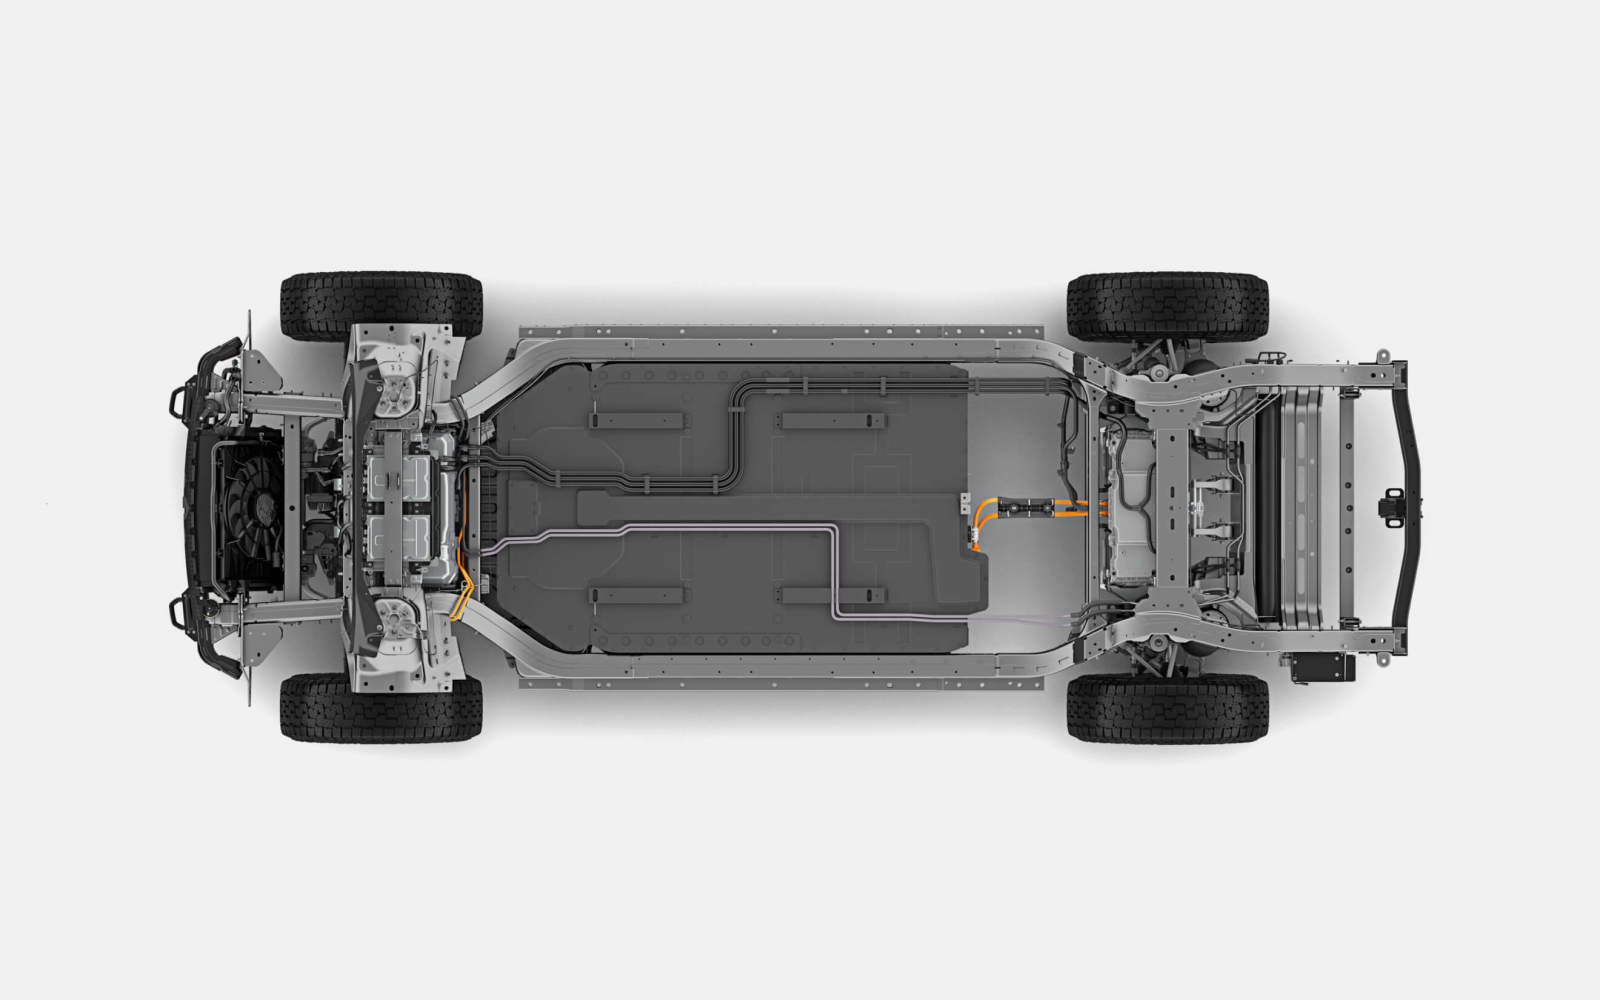 The R1T chassis and battery, as seen from above.